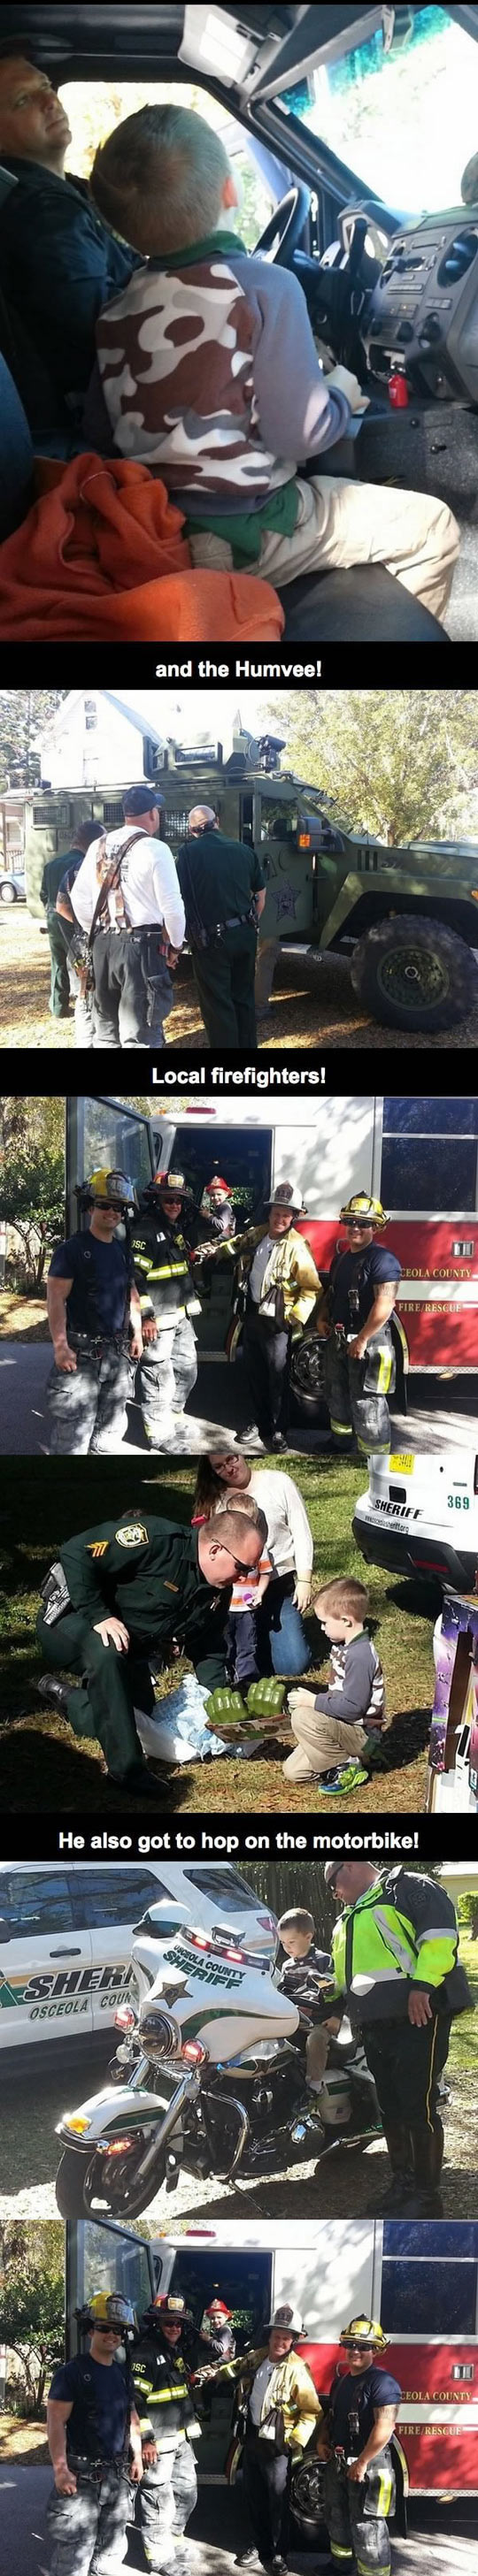 funny-kid-autism-birthday-community-showed-up-firefighter